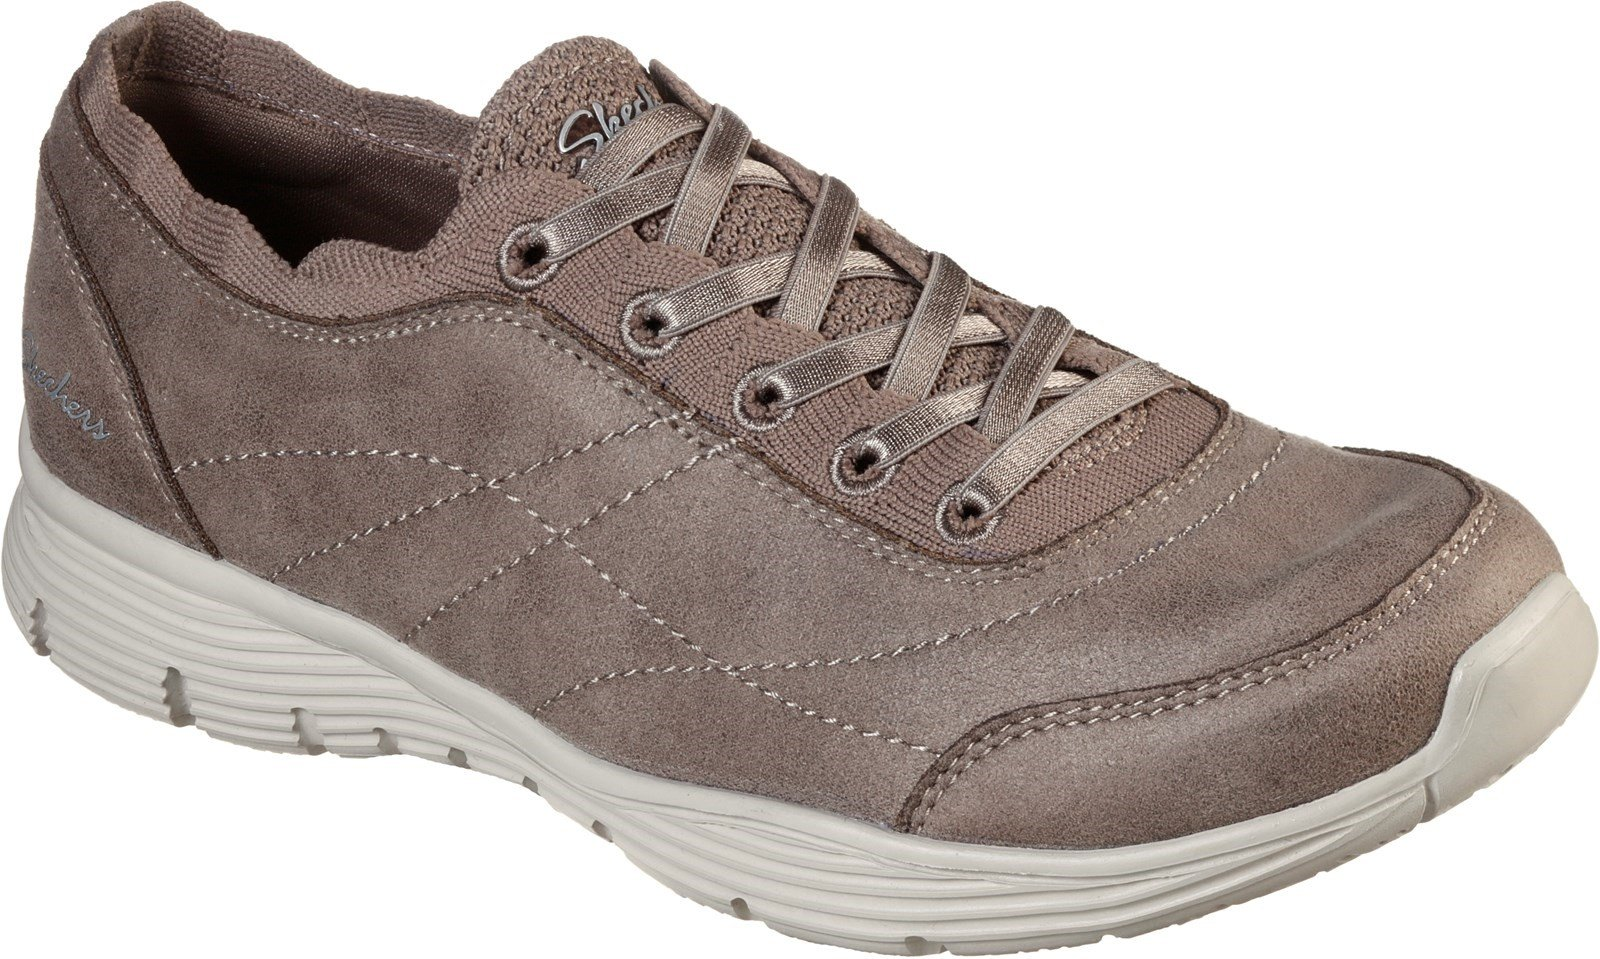 Skechers Women's Seager Scholarly Sports Trainer Various Colours 31063 - Dark Taupe 3